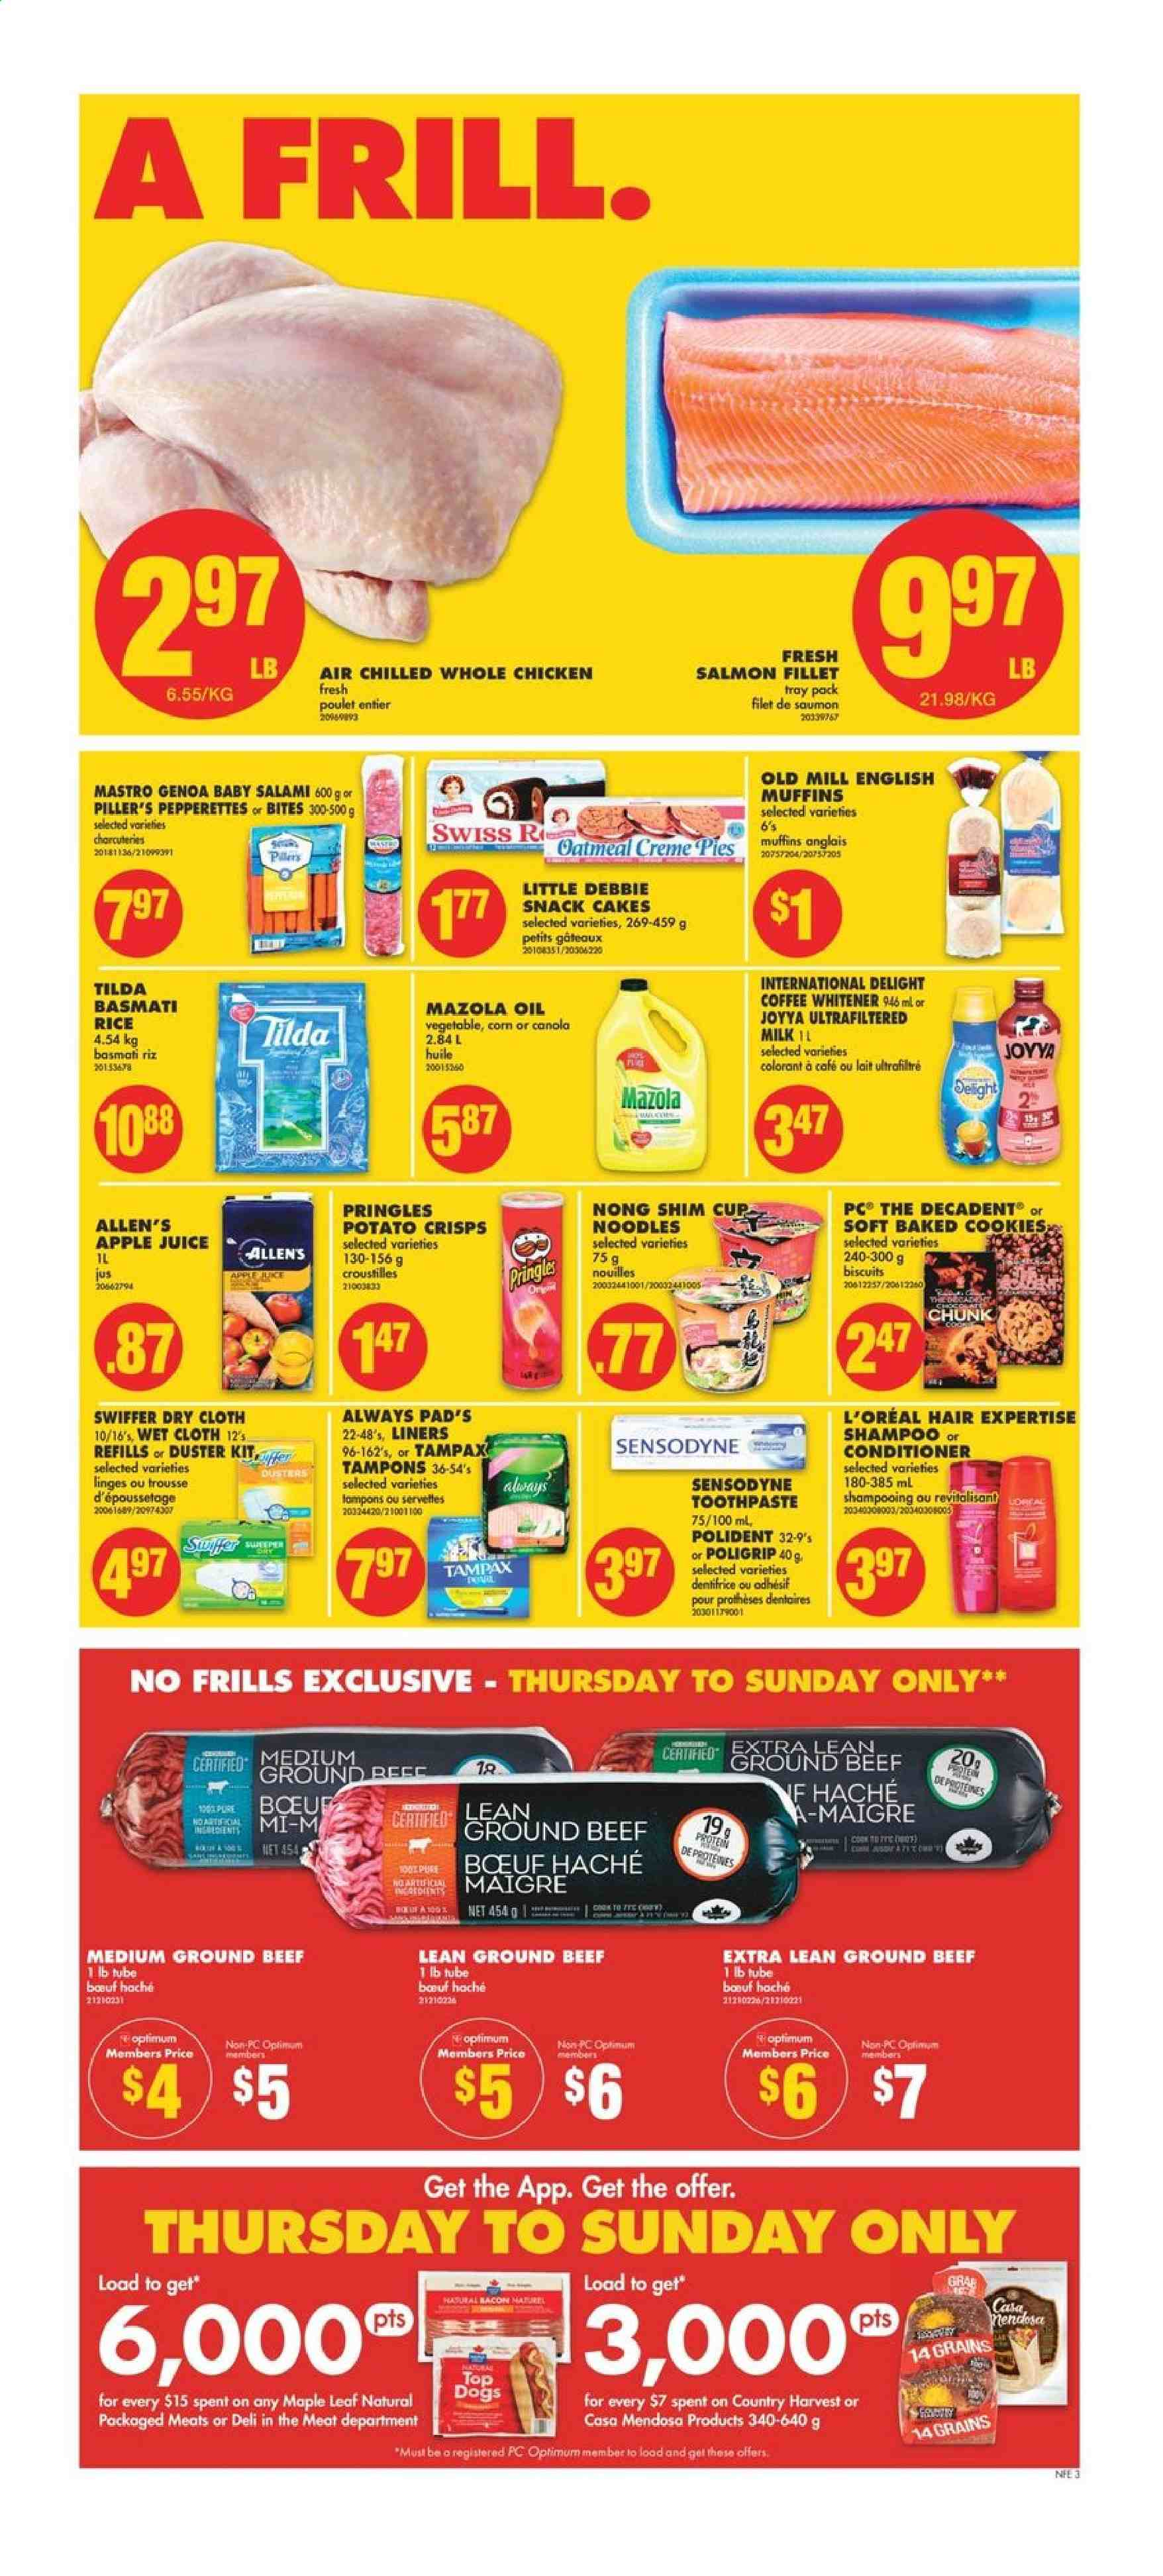 No Frills Flyer  - January 23, 2020 - January 29, 2020. Page 4.